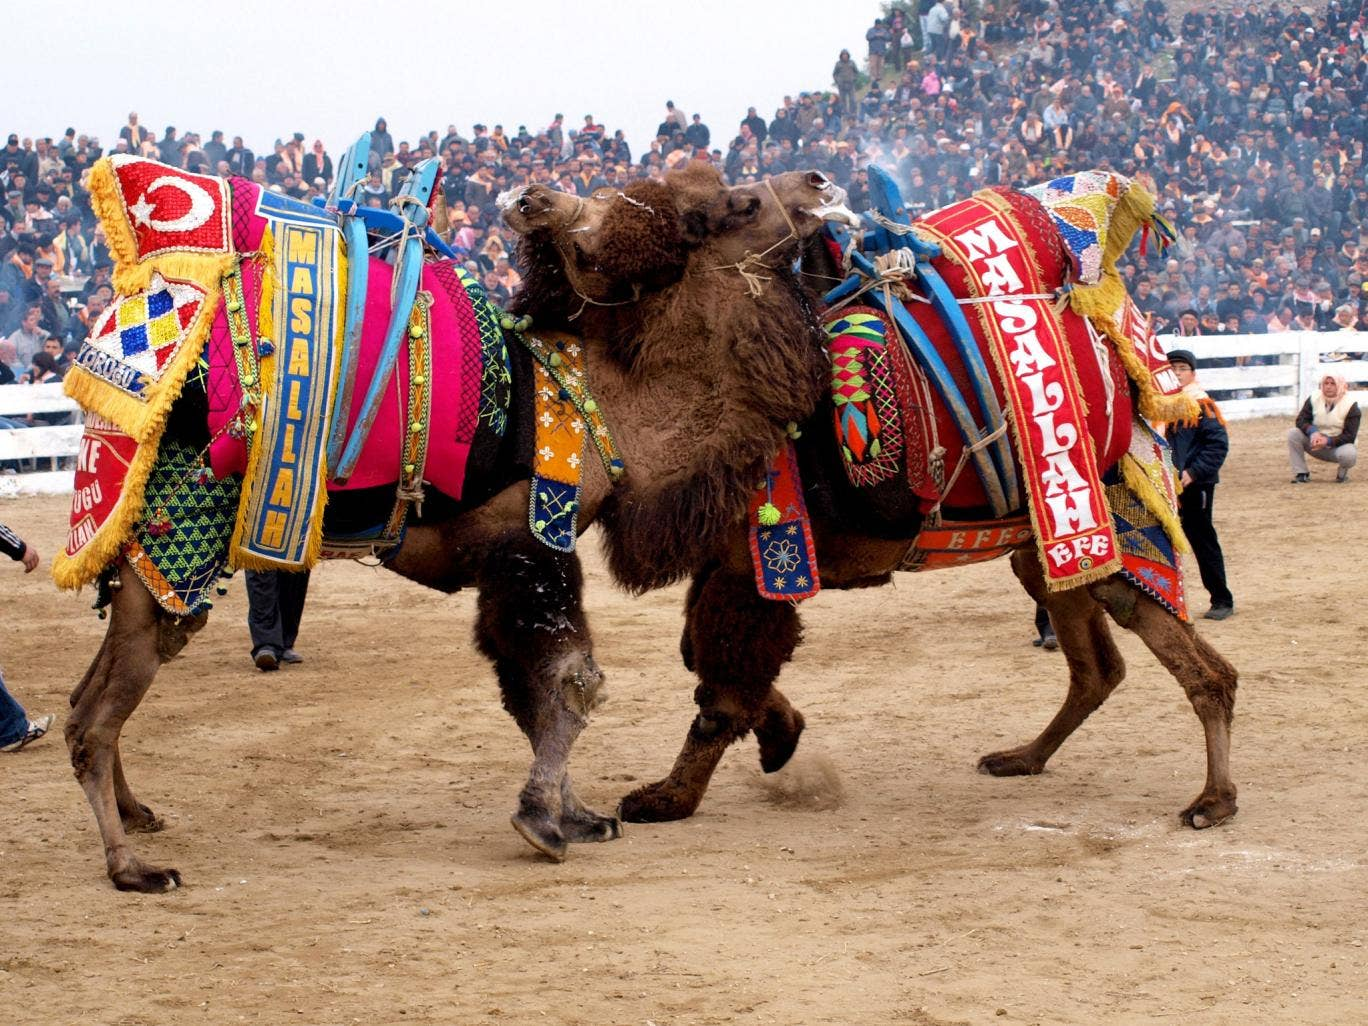 Getting the hump: camels do battle in front  of tens of thousands of spectators